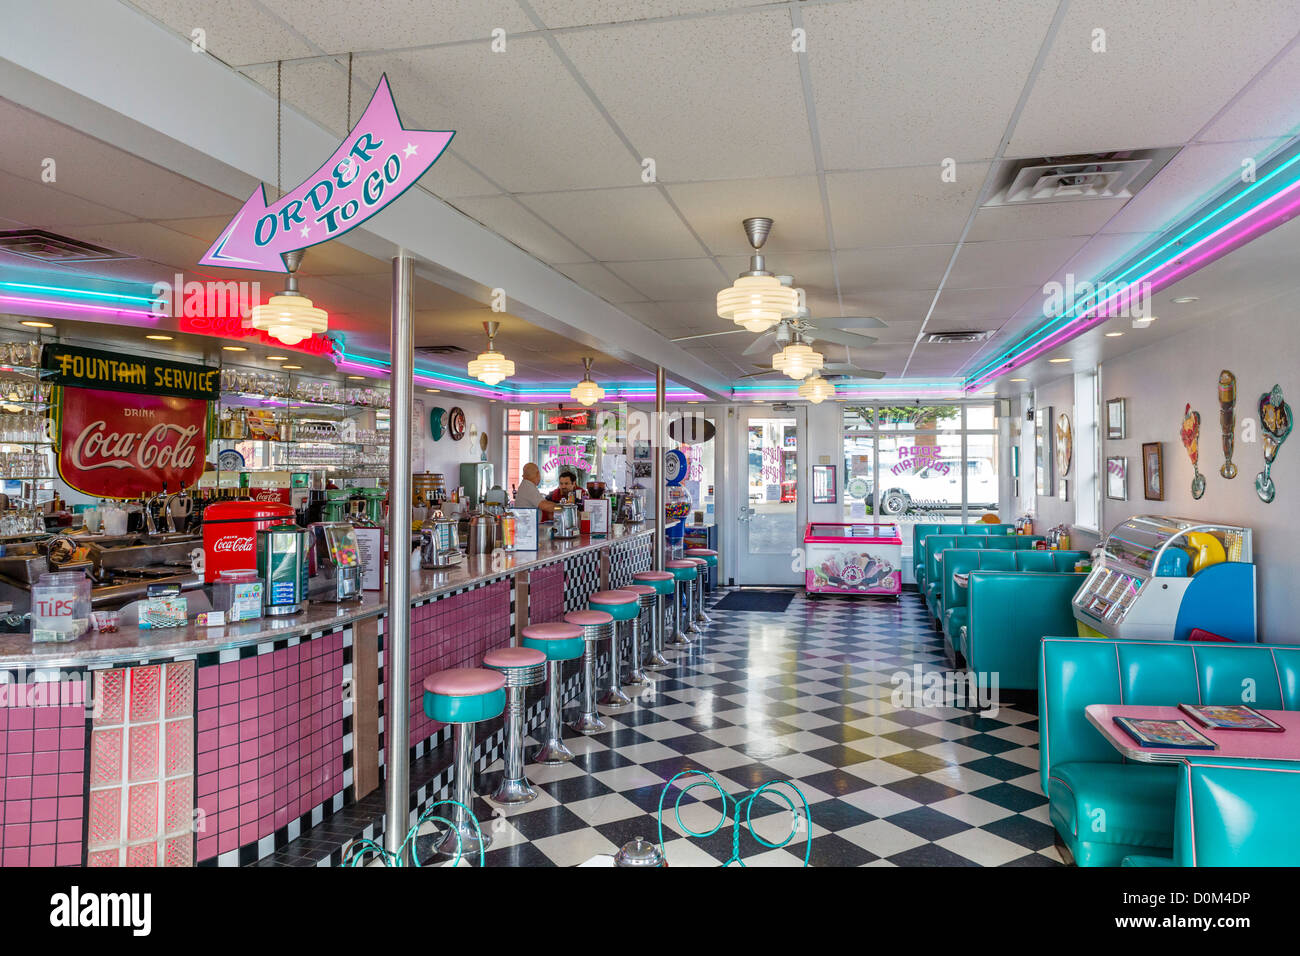 american diner interior stockfotos american diner. Black Bedroom Furniture Sets. Home Design Ideas